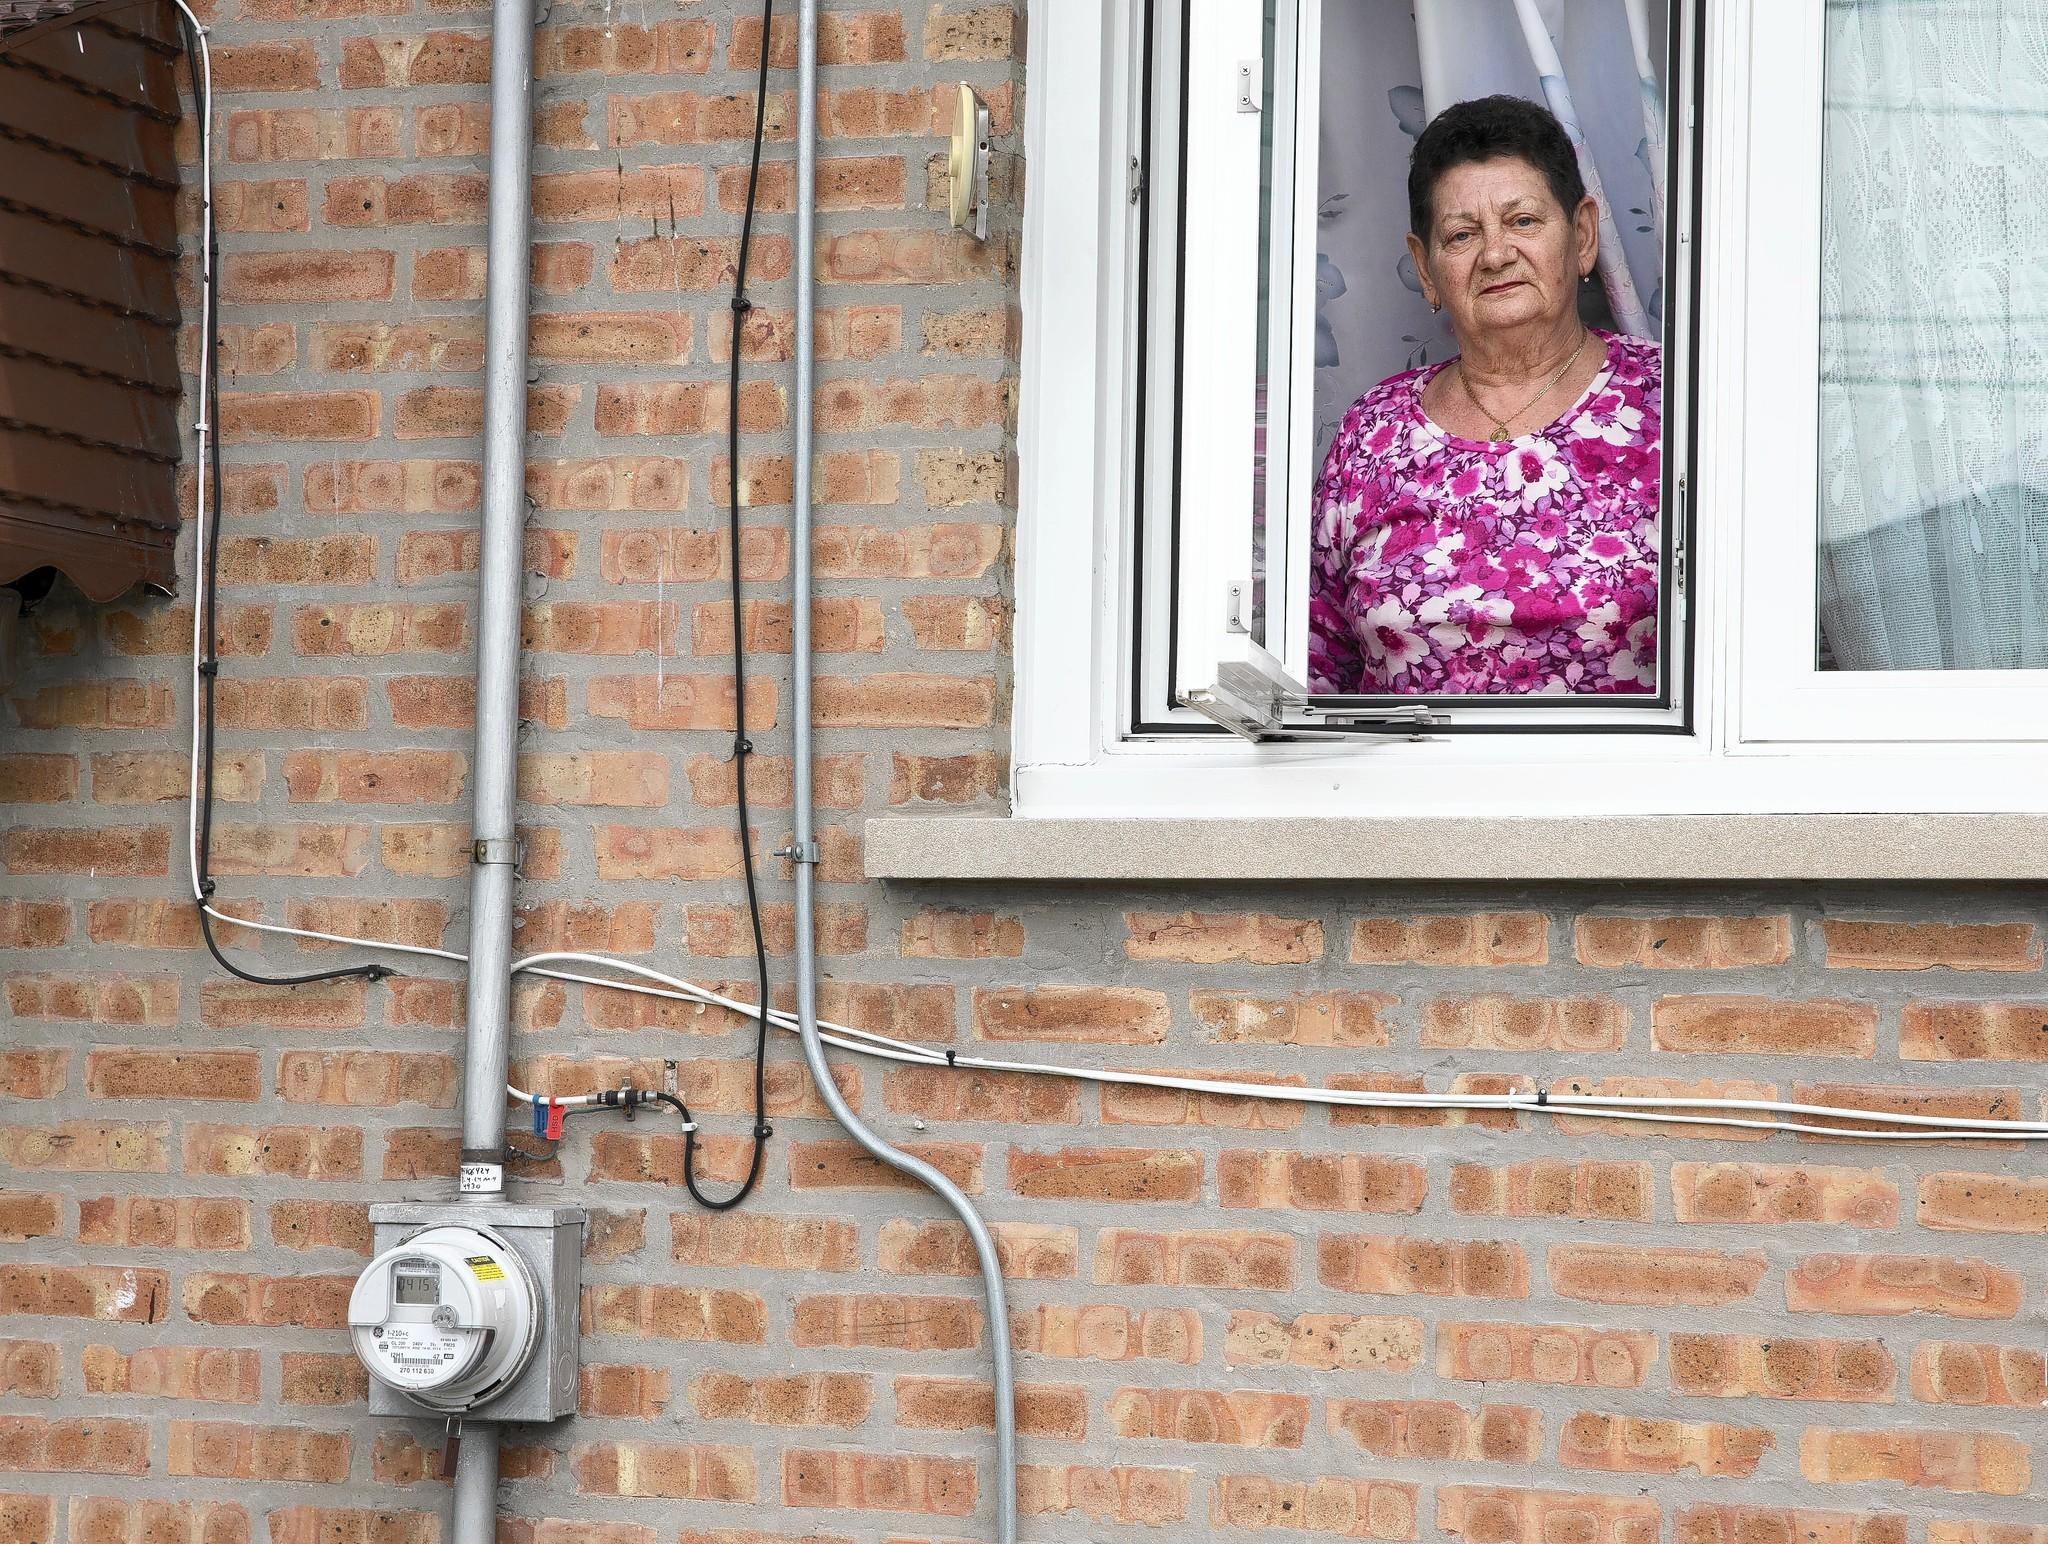 Zofia Czupek's March ComEd electricity bill charged her for 1,780 kilowatt-hours, almost triple her usage the previous March, after a smart meter was installed at her home.